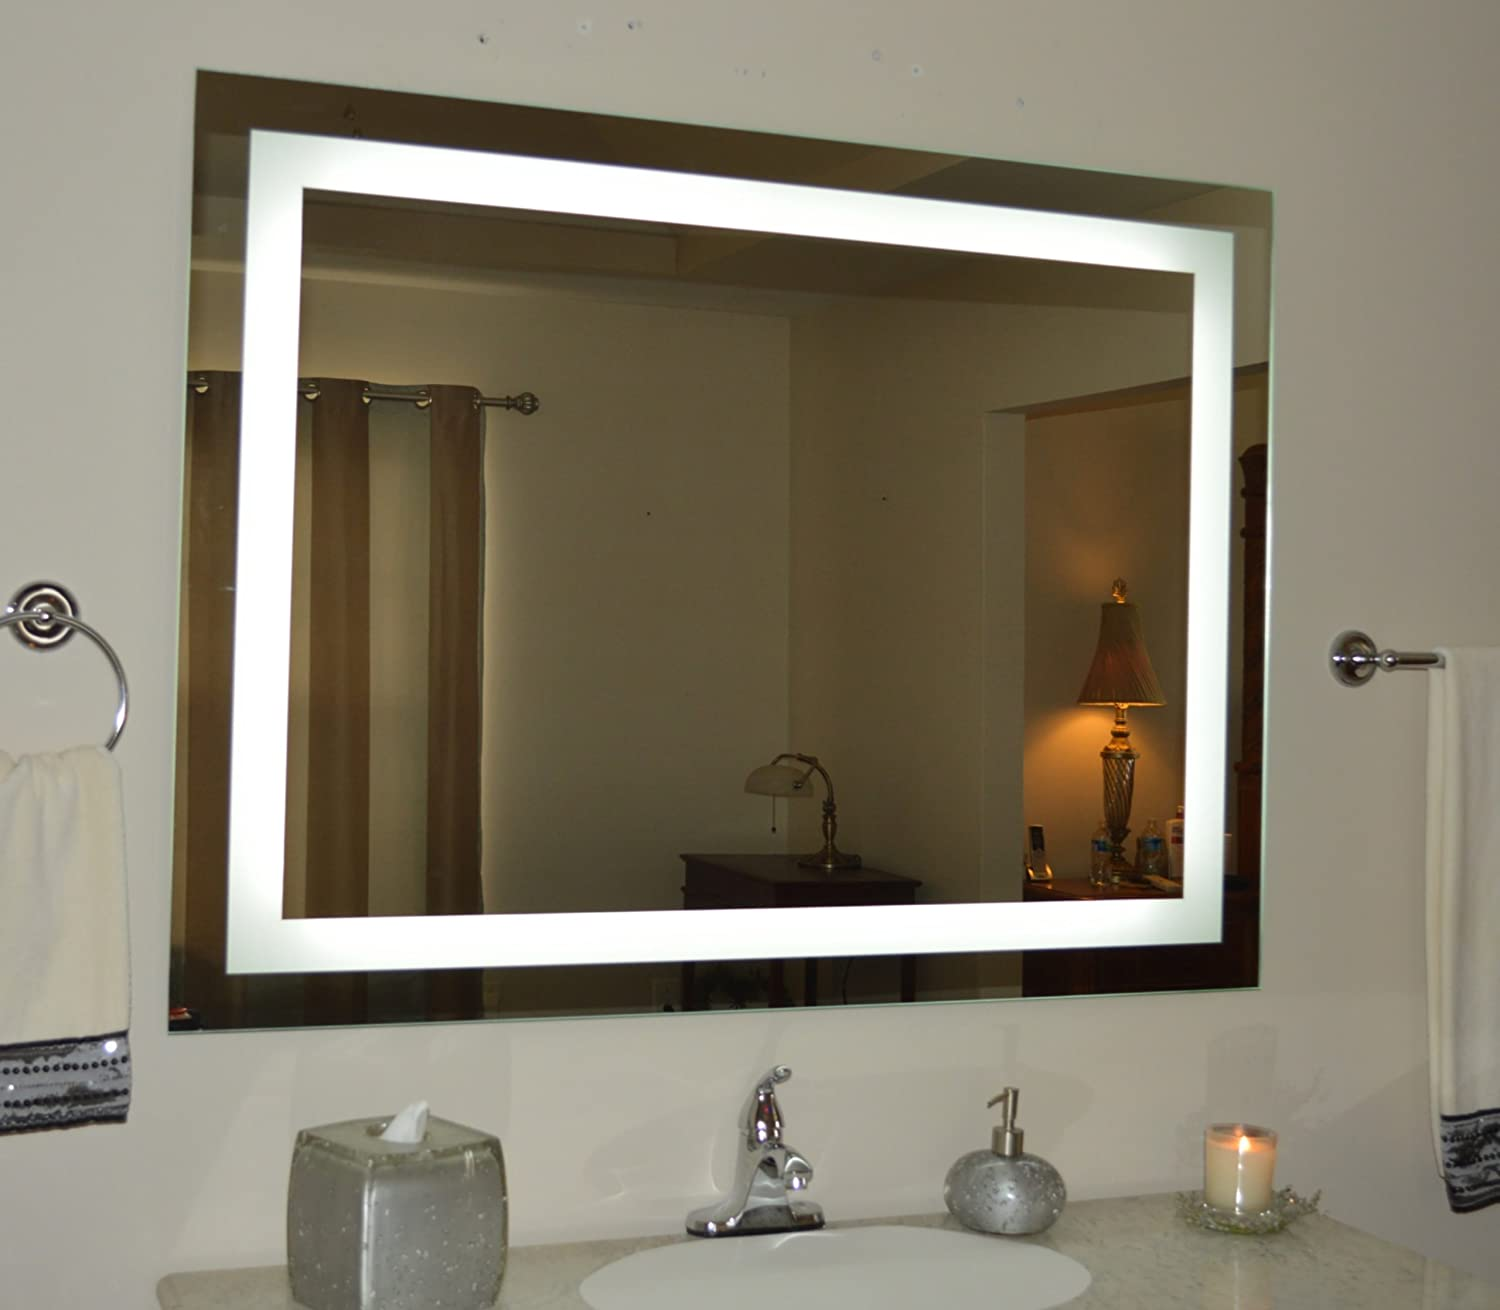 Amazon Wall Mounted Lighted Vanity Mirror LED MAM84836 Commercial Grade 48 Home Kitchen